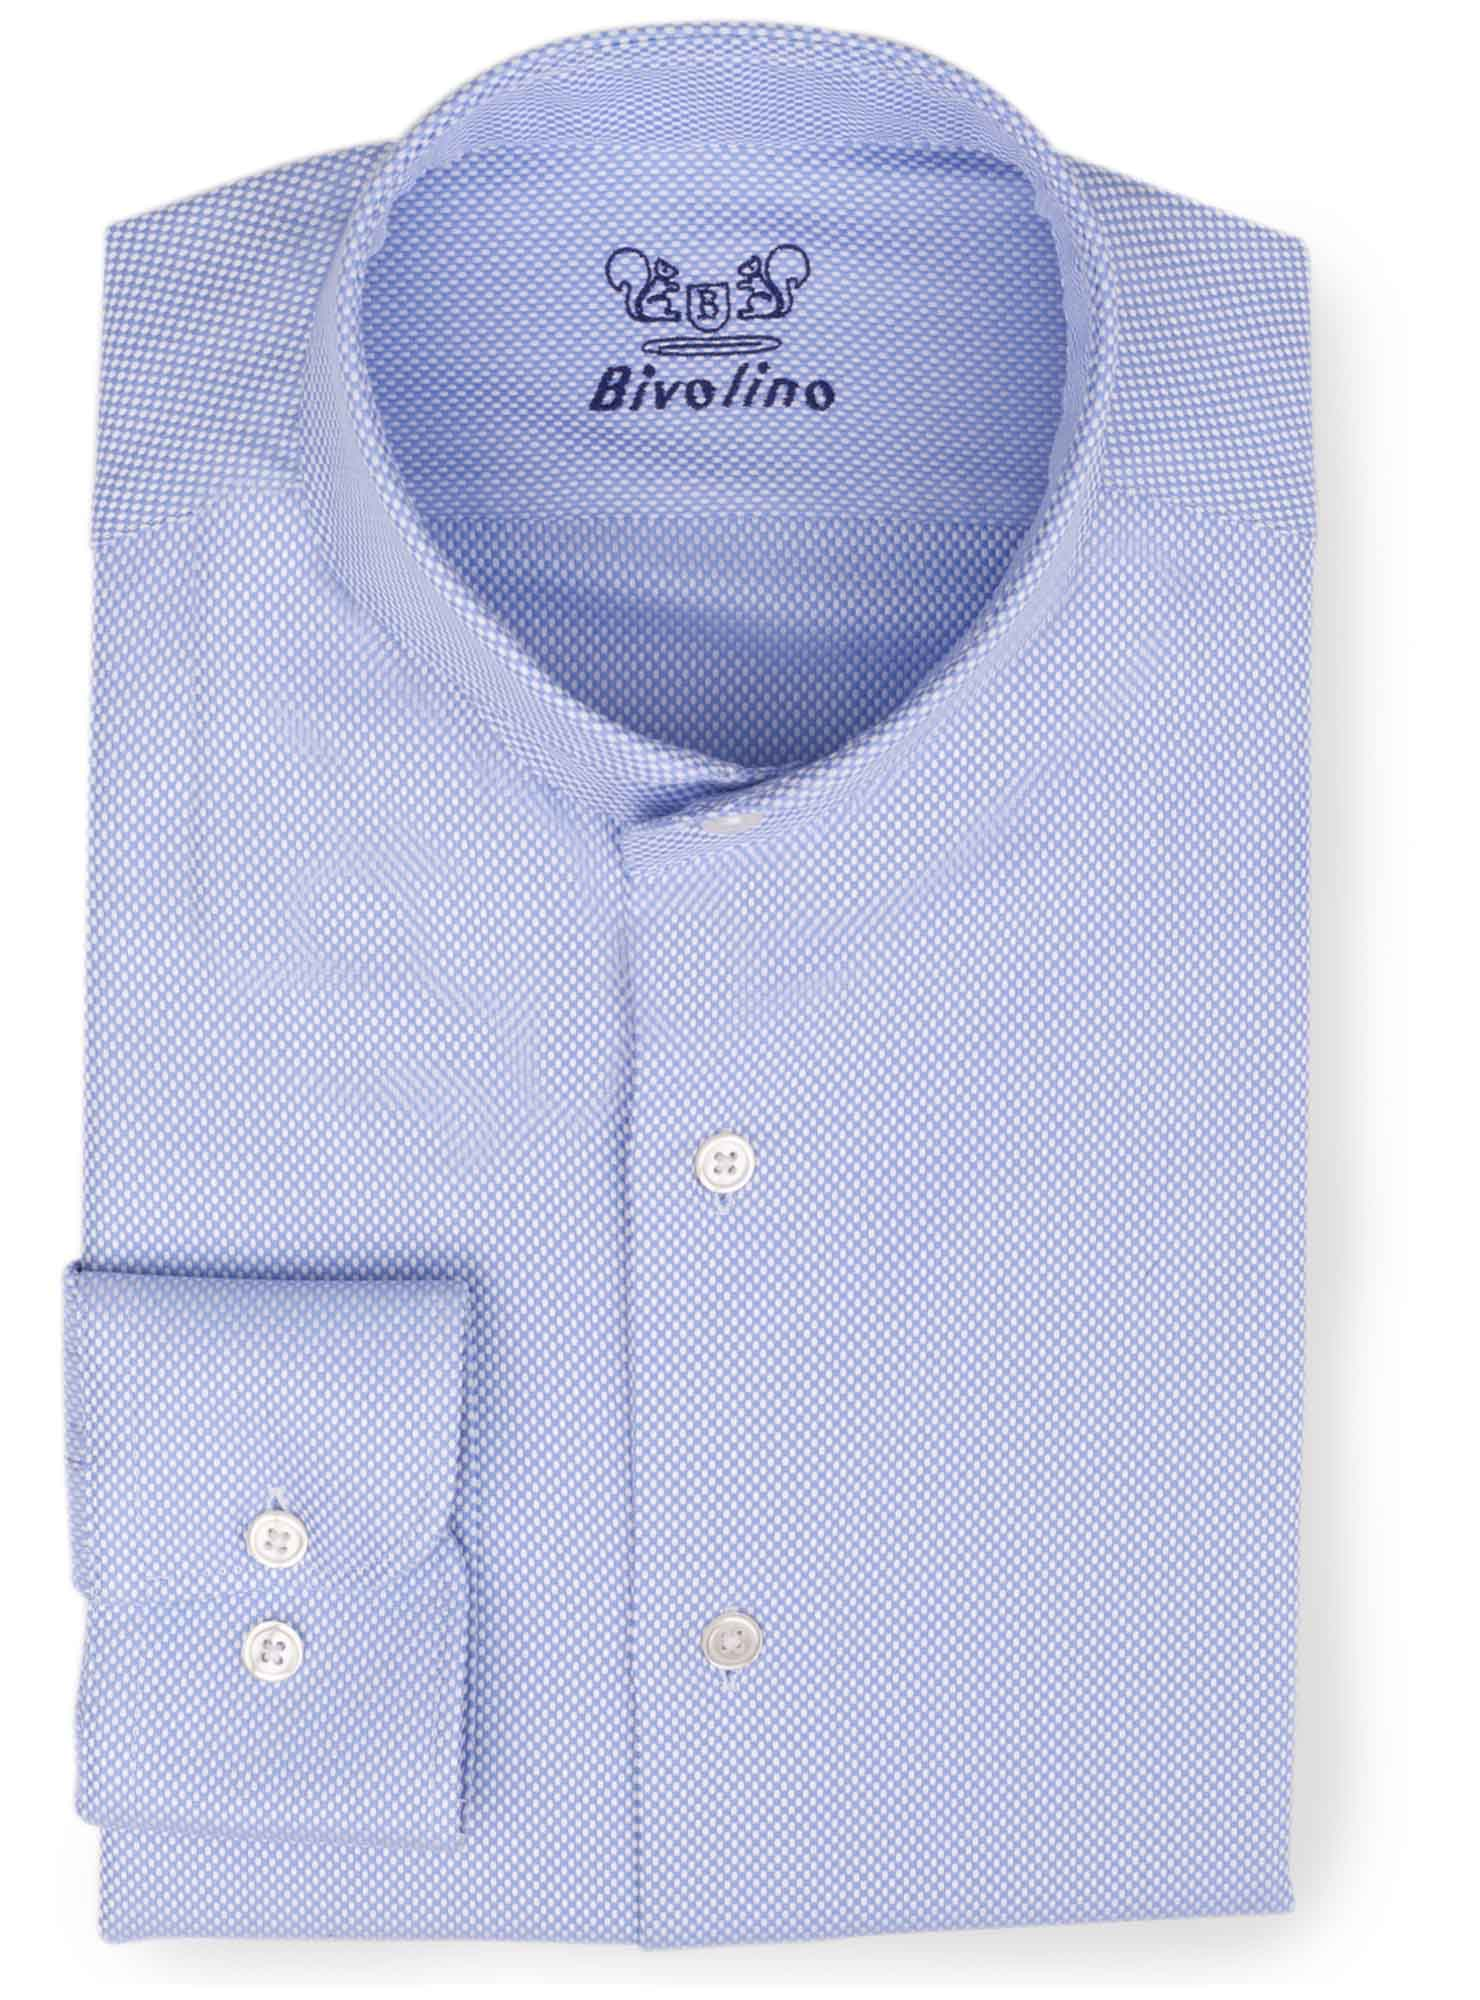 FORDIANO - Chemise dobby bleue col cutaway - Bedford 2